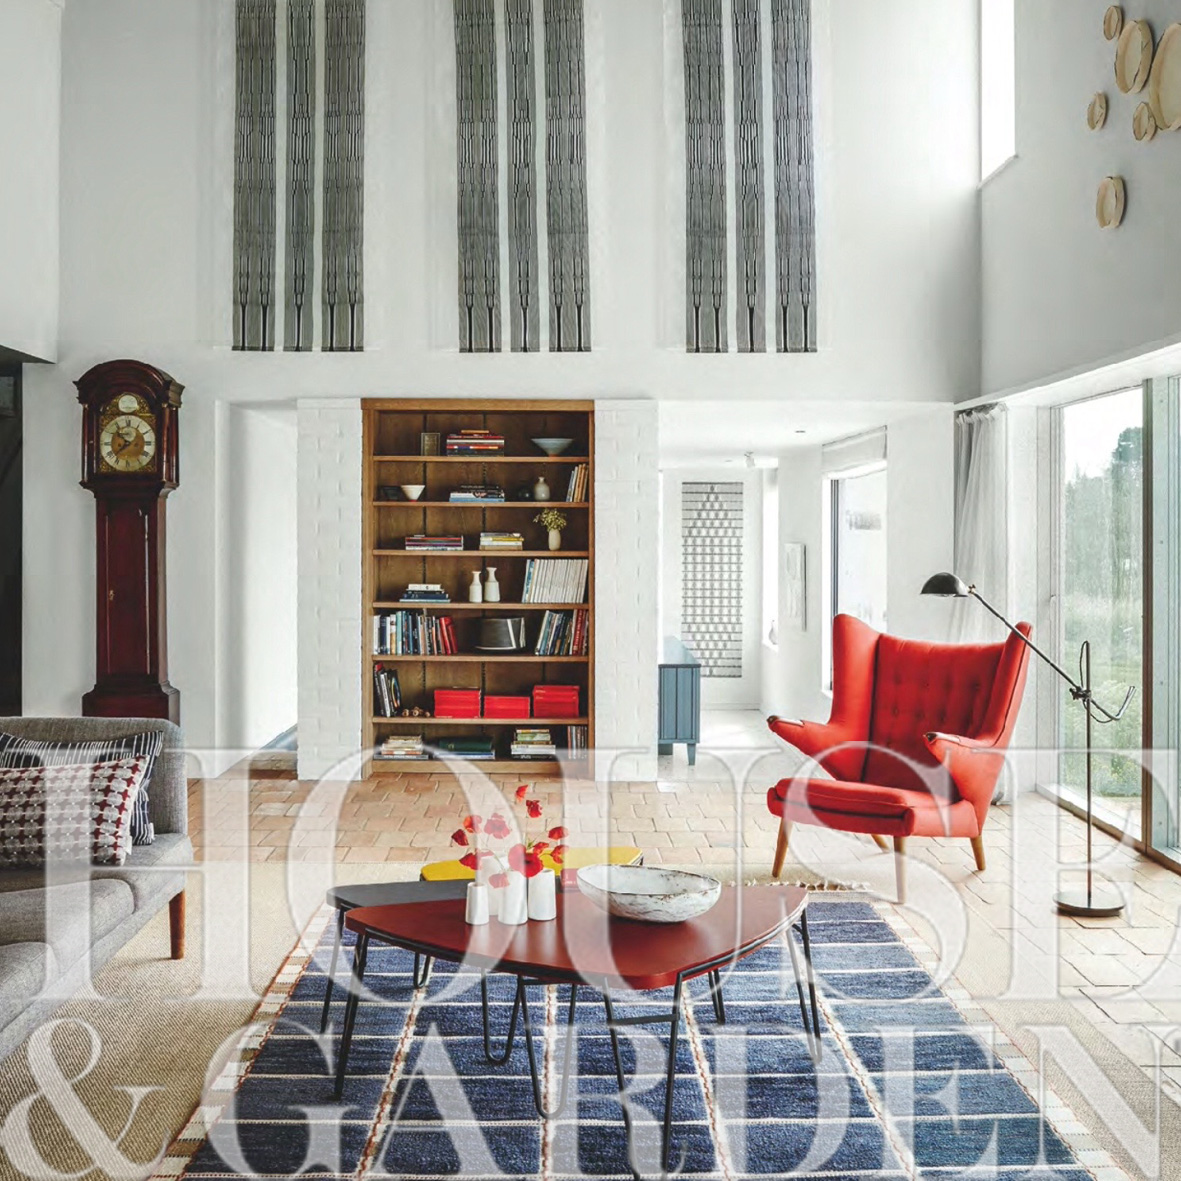 Sitting room with vaulted ceiling, pamments on floor, and sliding doors to the gardens